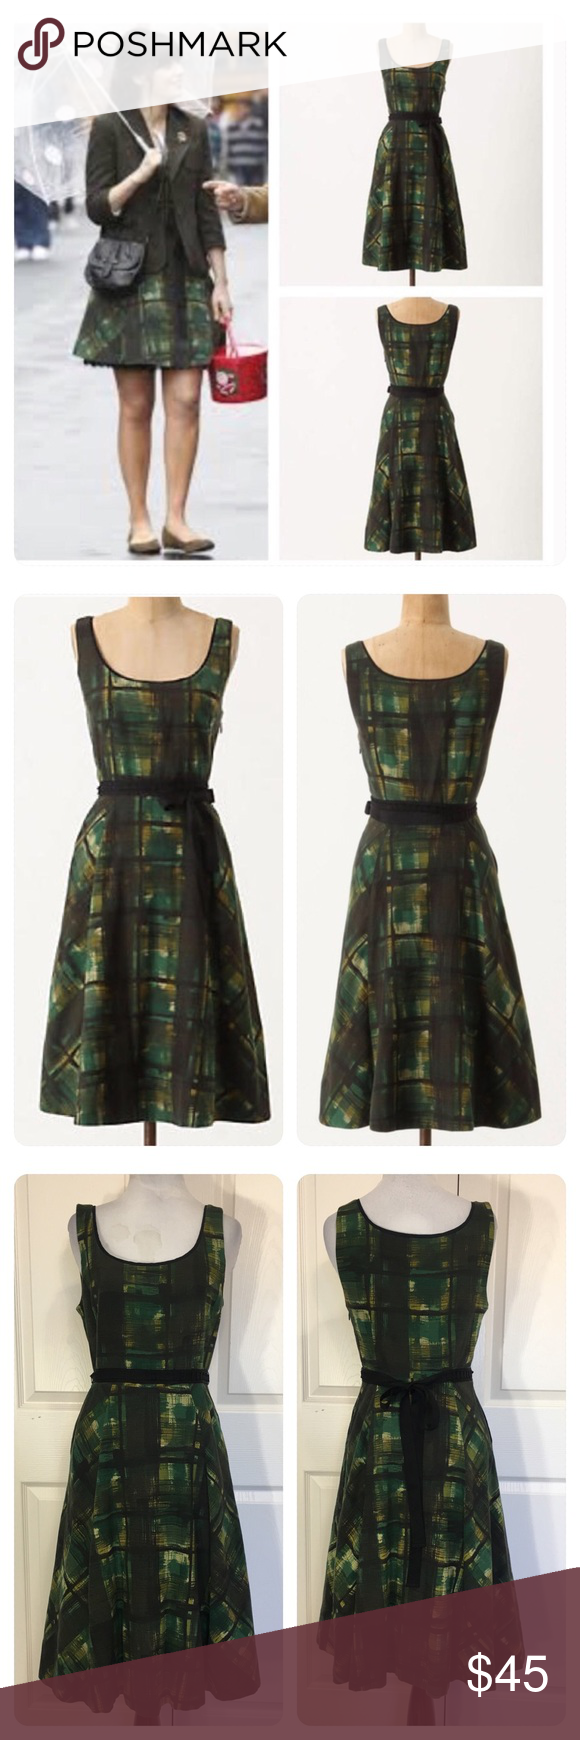 23dc4e21a3cc Anthropologie Painted Plaid Dress by Maeve Anthropologie Painted Plaid Dress  by Maeve As seen on New Girl's, Zooey Deschanel! This muted tartan frock,  ...